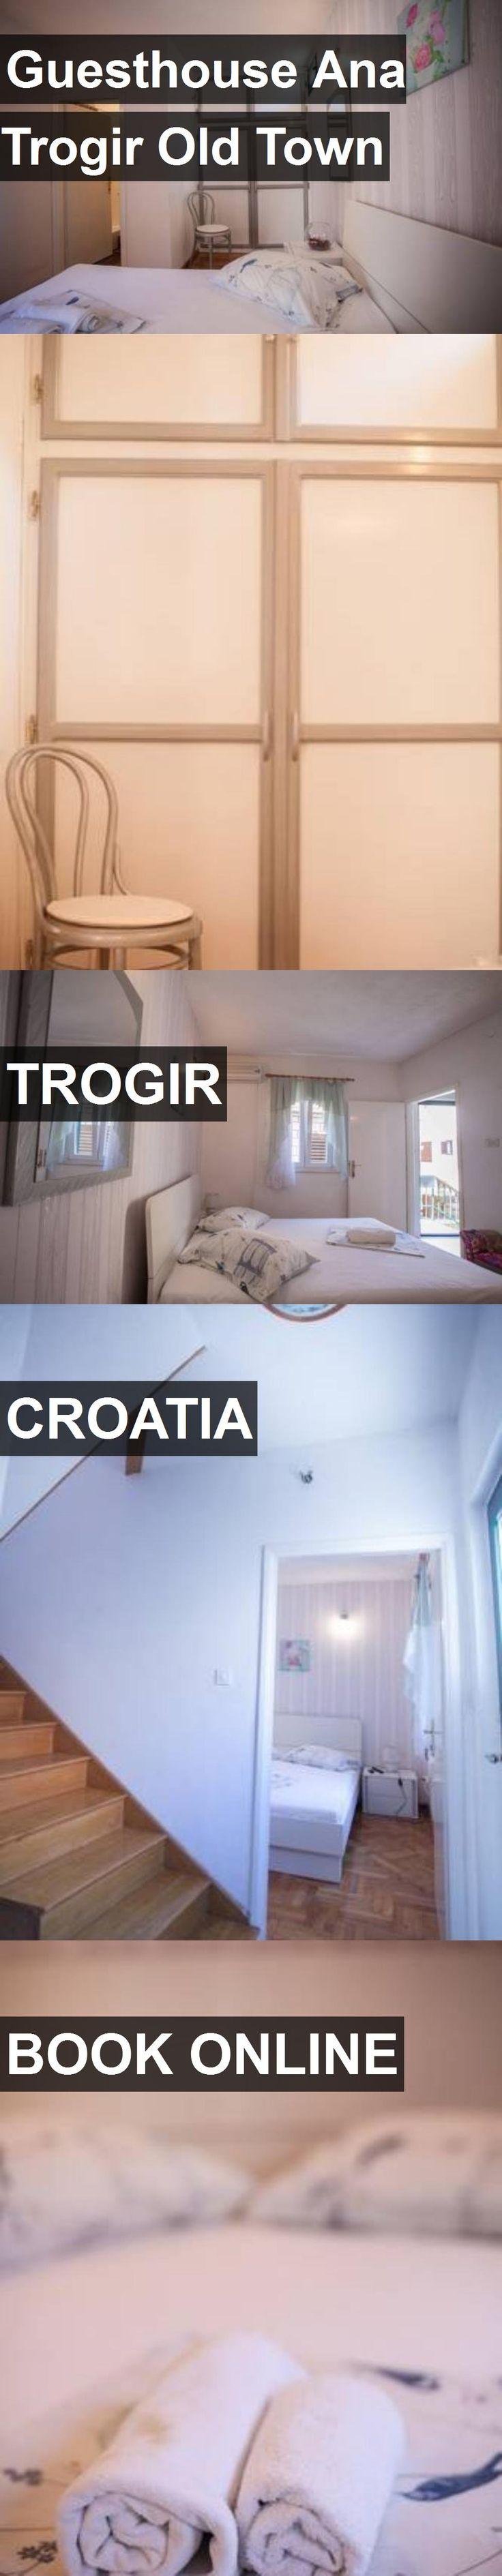 Hotel Guesthouse Ana Trogir Old Town in Trogir, Croatia. For more information, photos, reviews and best prices please follow the link. #Croatia #Trogir #travel #vacation #hotel